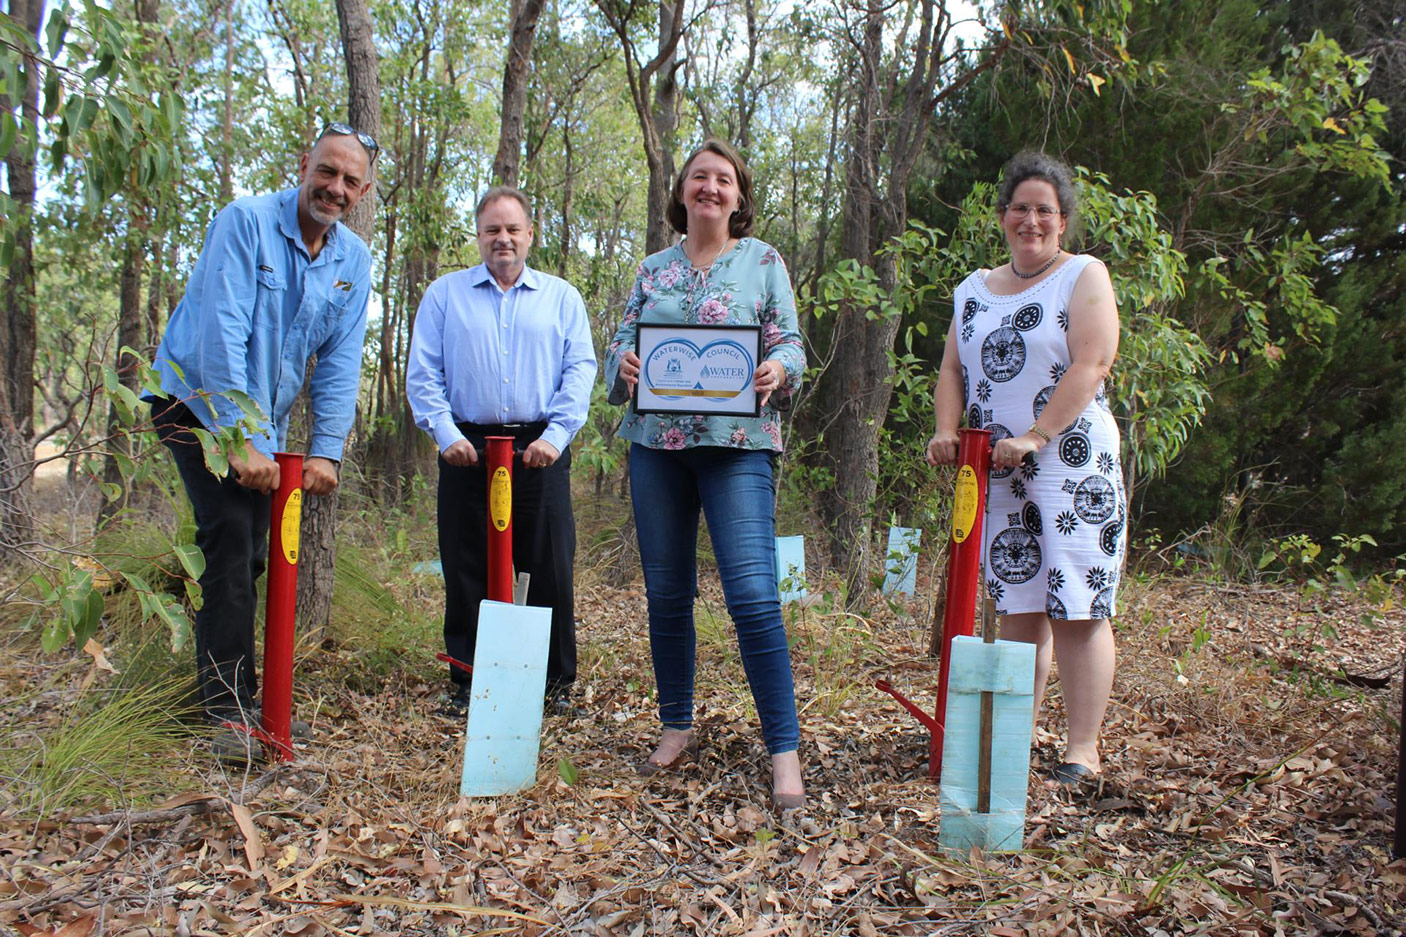 Shire President Cr Michelle Rich celebrates the Shire's 2020 Gold Waterwise Council rating